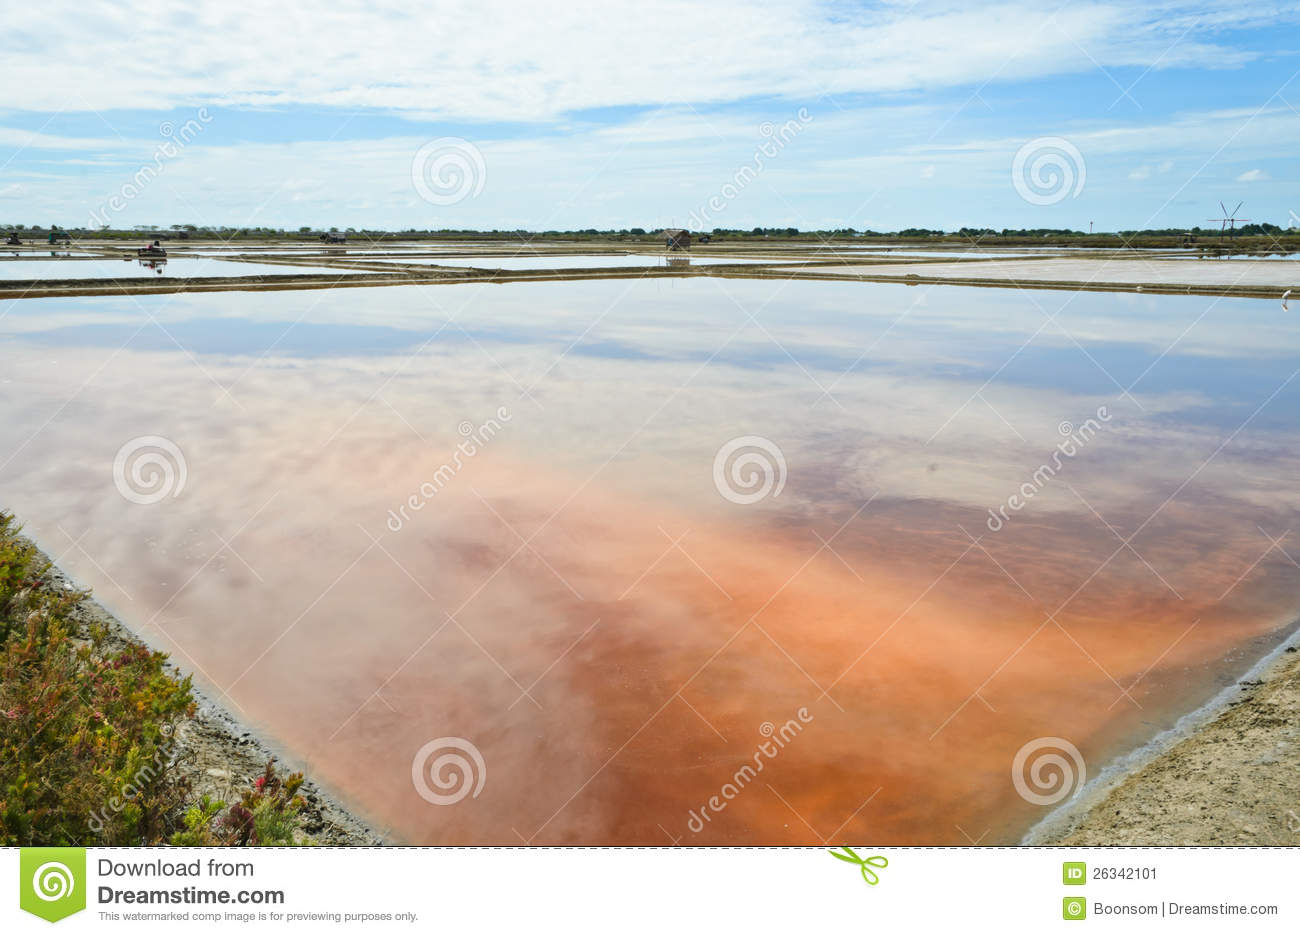 Salt evaporation ponds stock image image 26342101 for Design of evaporation pond